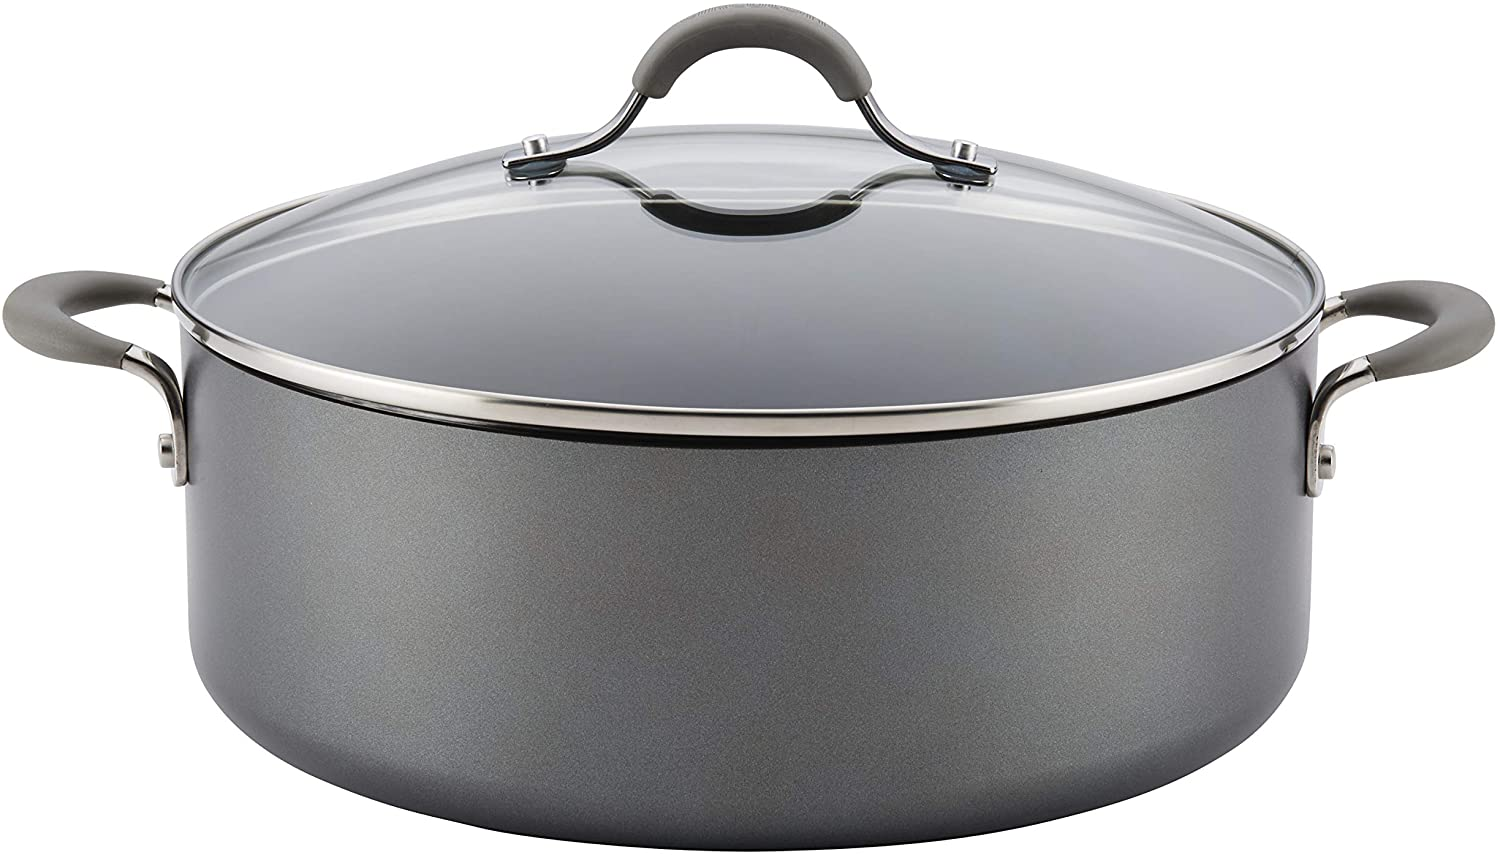 Circulon 84569 Elementum Hard Anodized Nonstick Stock Pot/Stockpot with Lid, 7.5 Quart, Oyster Gray